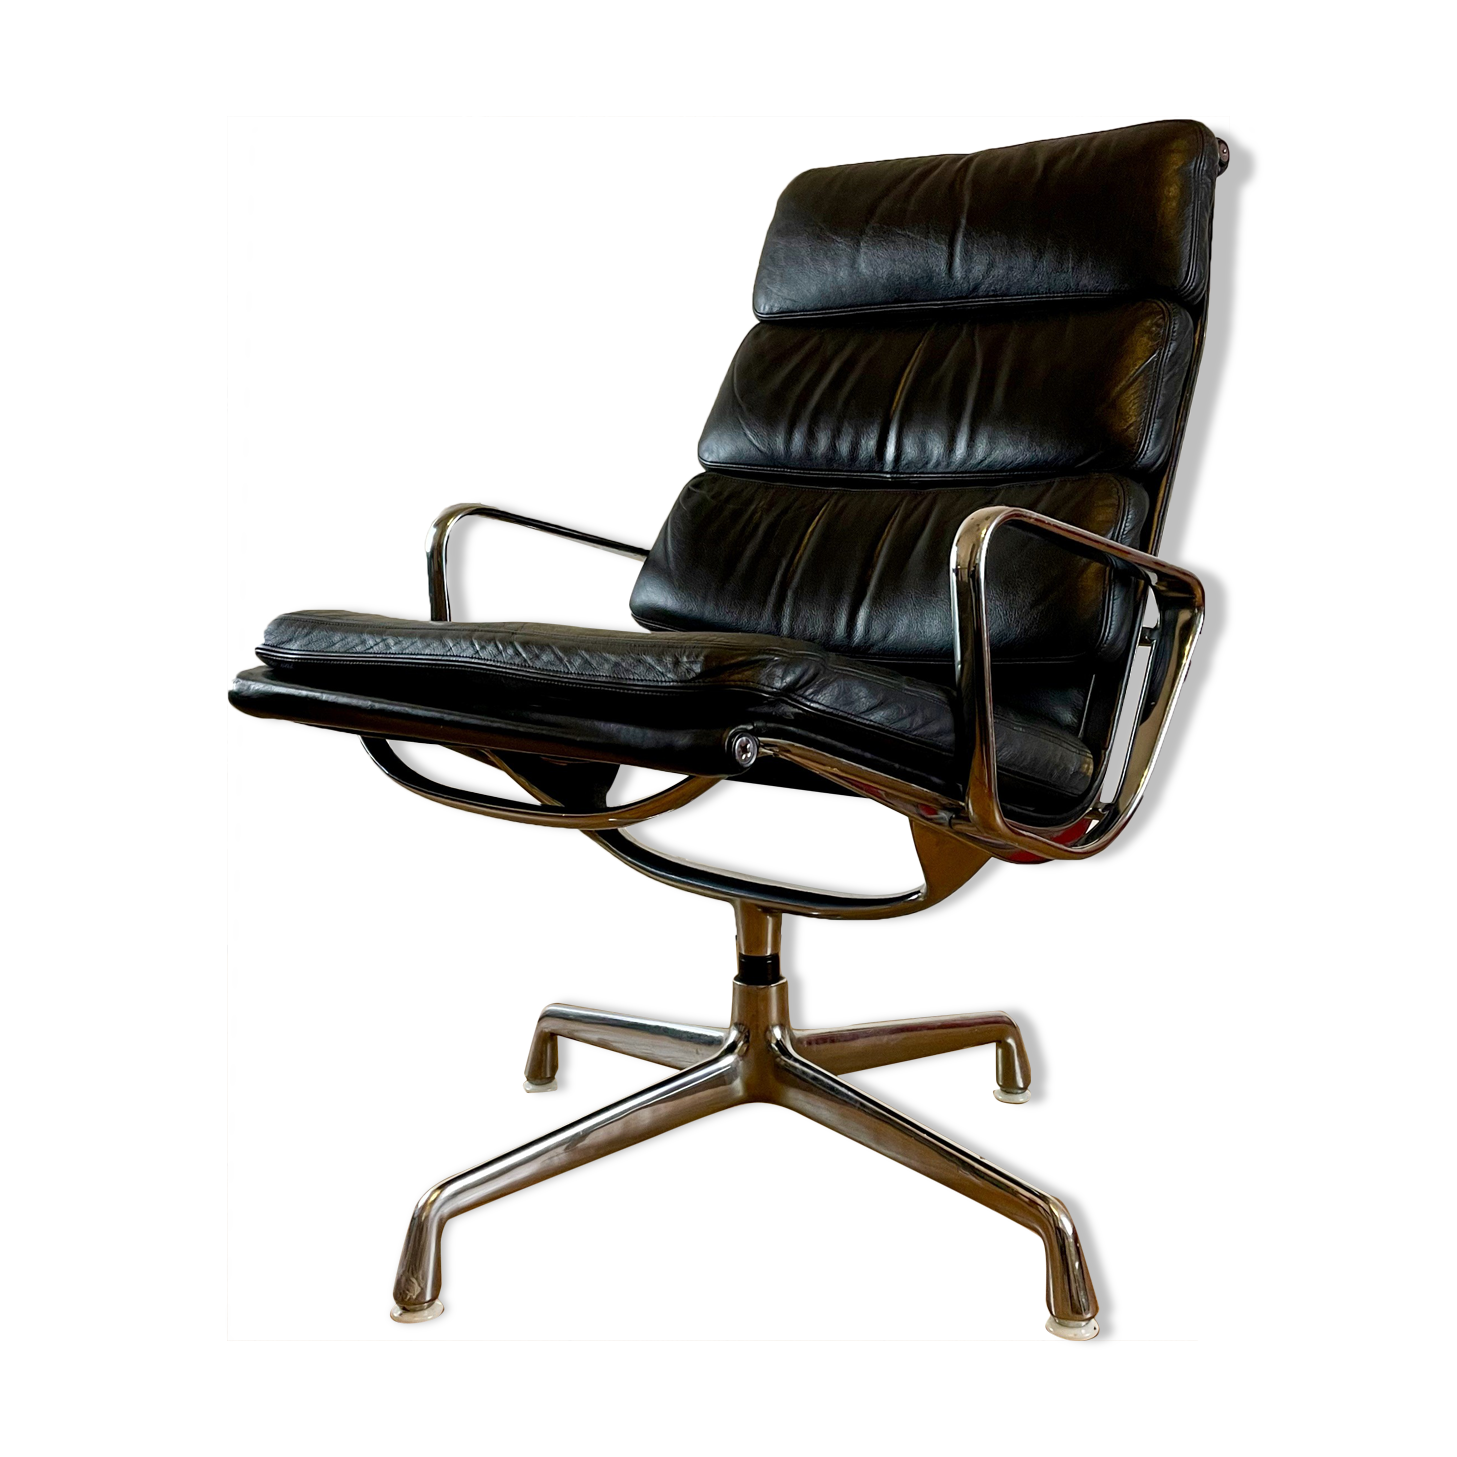 Fauteuil Soft Pad Lounge Chair EA 216 Charles et Ray Eames pour Herman Miller, circa 1970